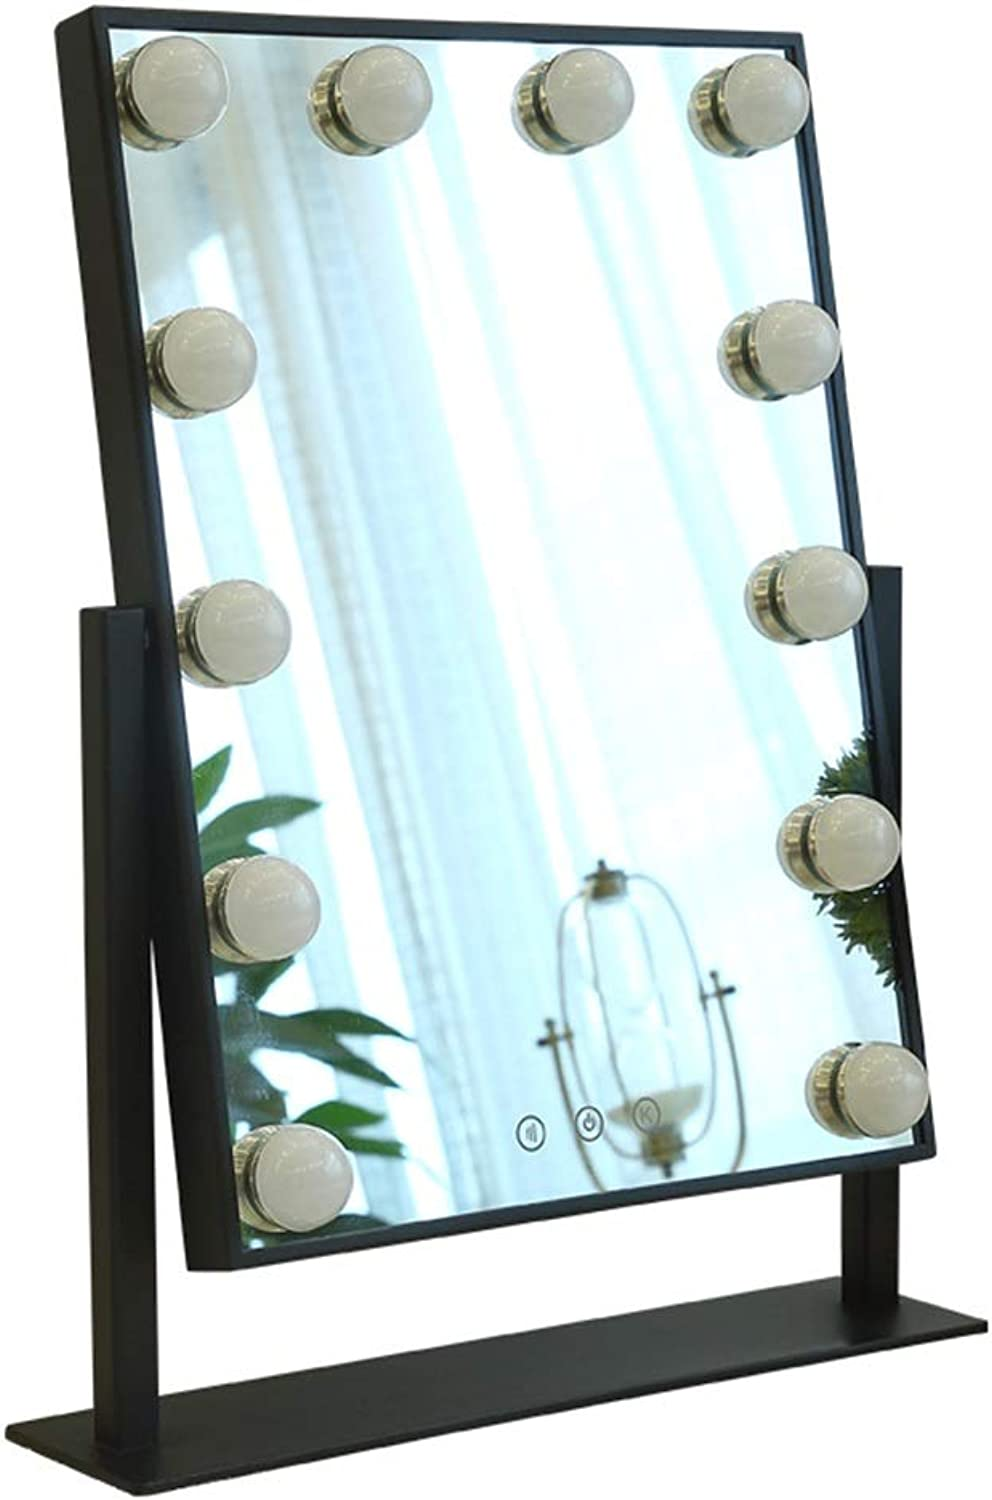 Makeup Mirrors Vanity Mirror with LED Lights Kit for Makeup Dressing Table   Hollywood Style Makeup Mirror LED Lights with 9 12 Dimmable Light Bulbs (Black) Bathroom Furniture (Size   Large)